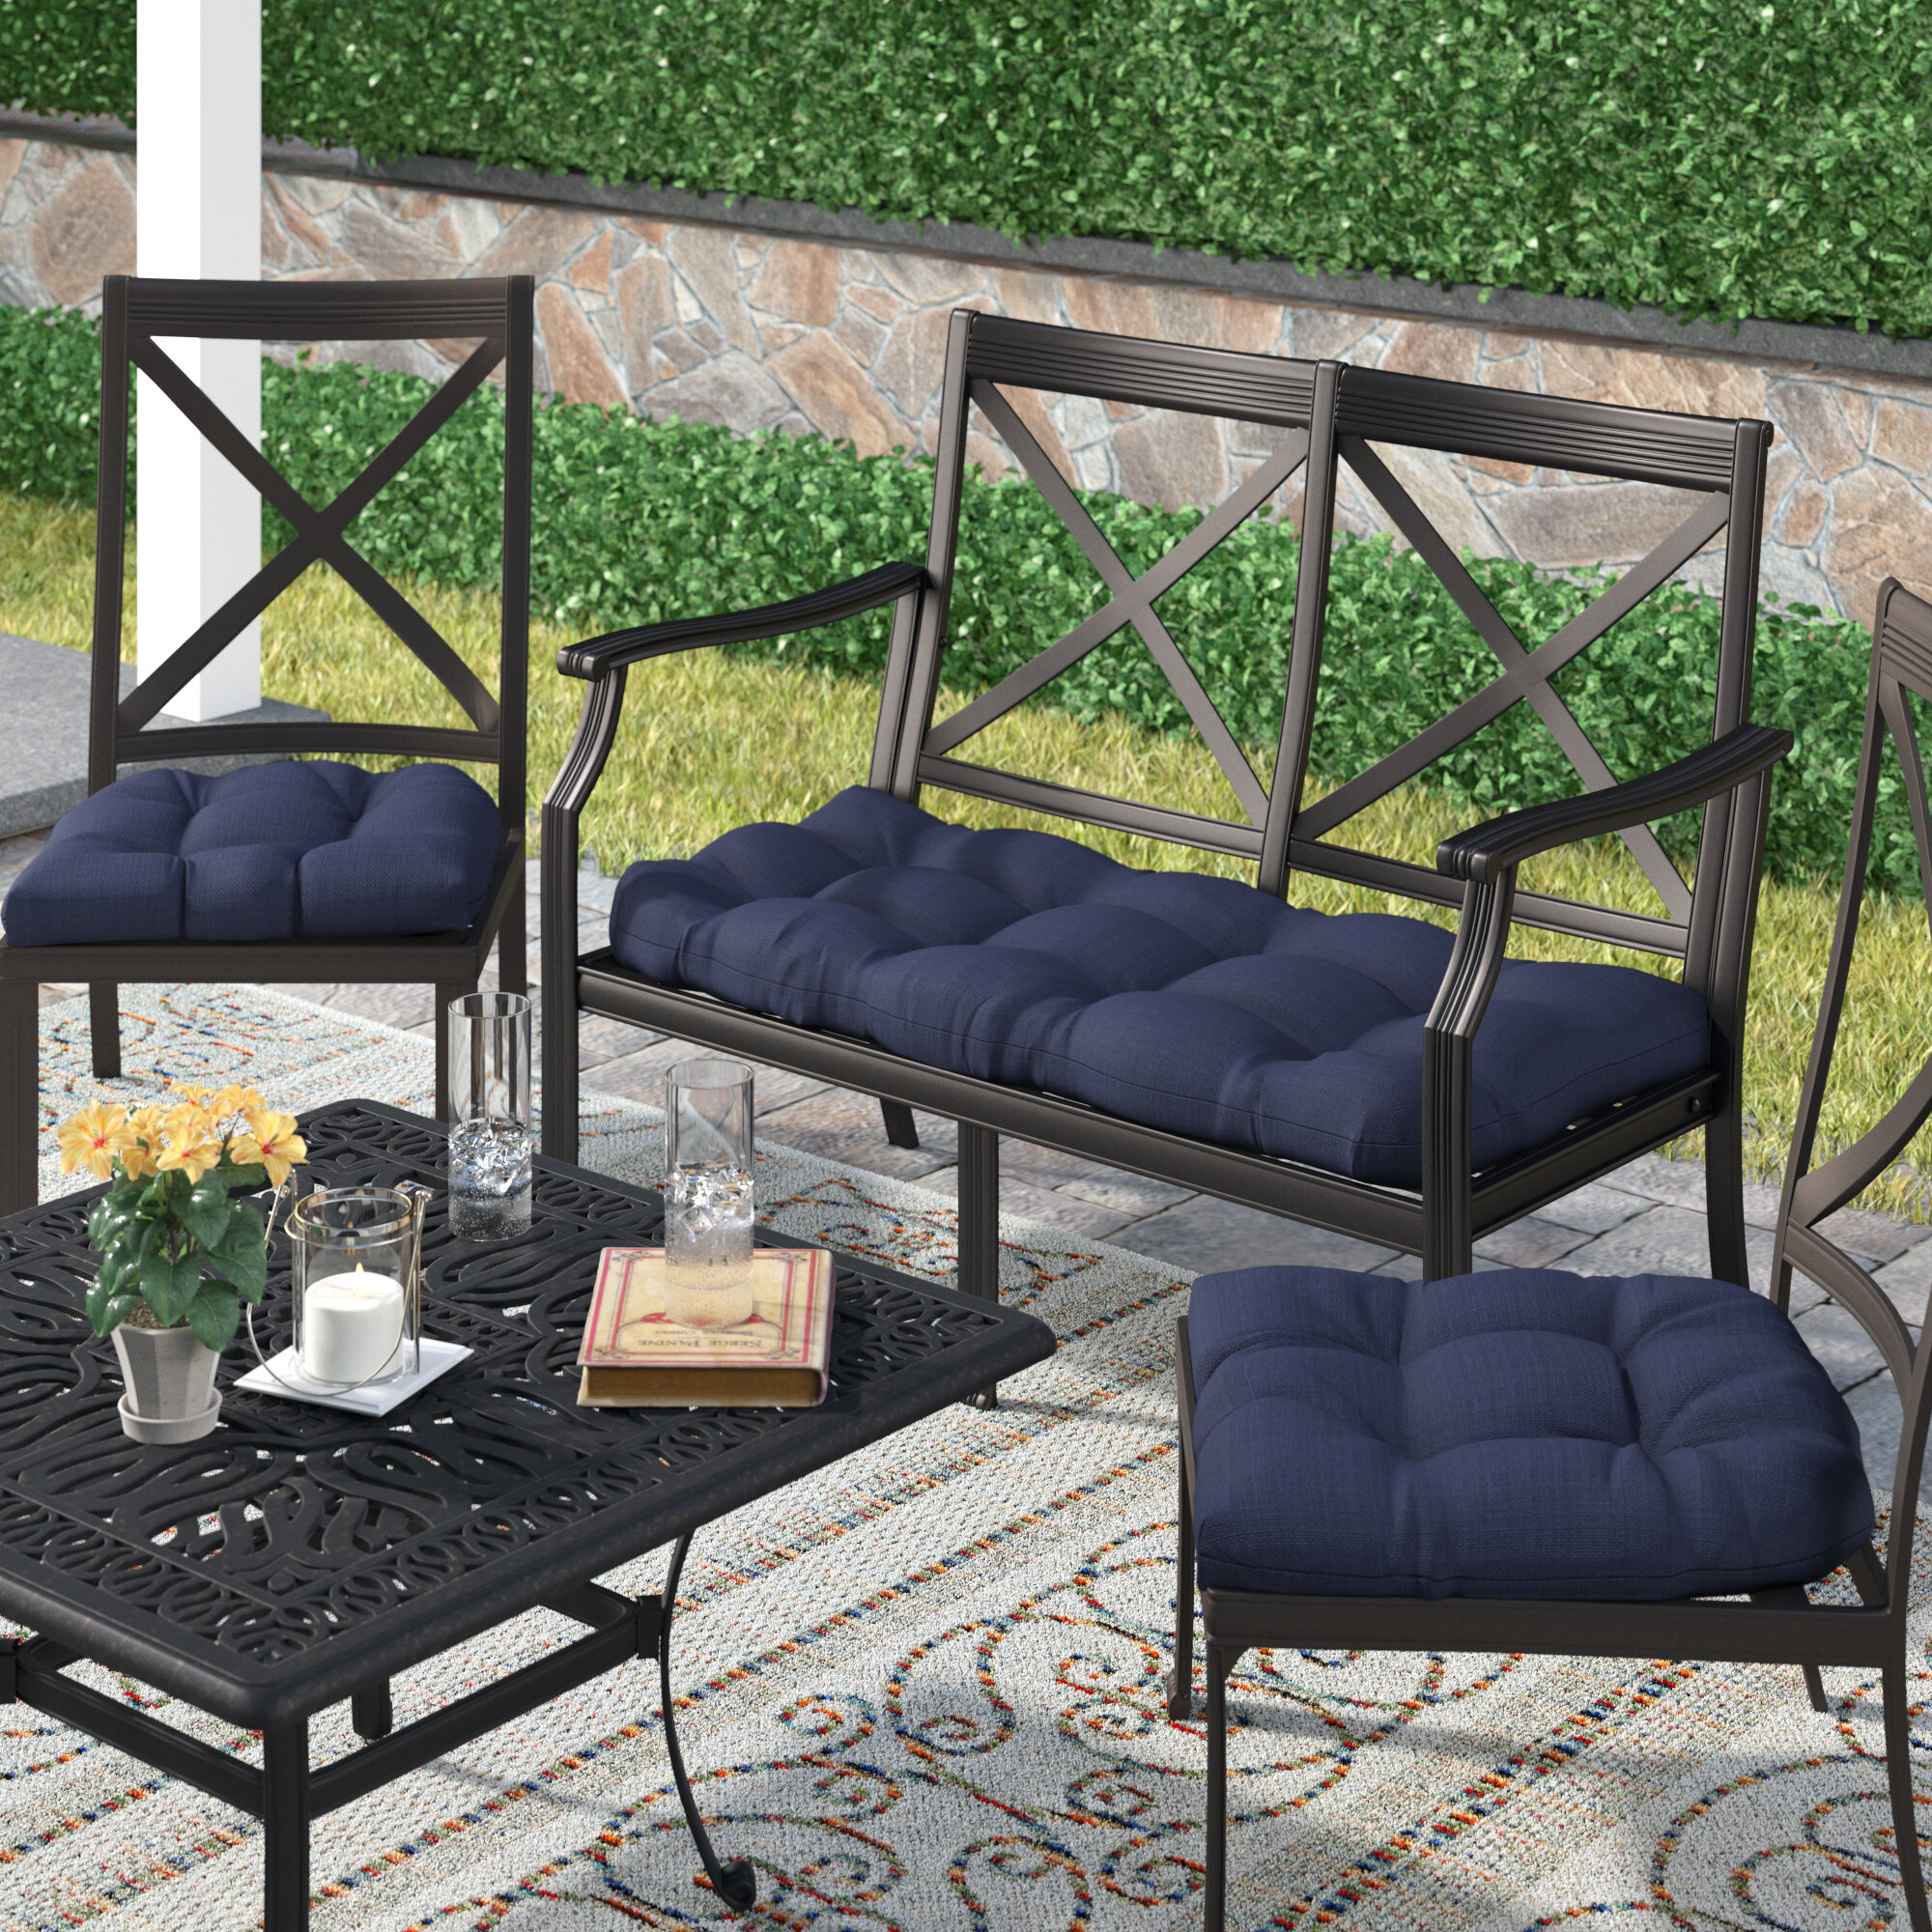 Darby Home Co 3 Piece Indoor Outdoor Bench And Dining Chair Cushion Set Reviews Wayfair